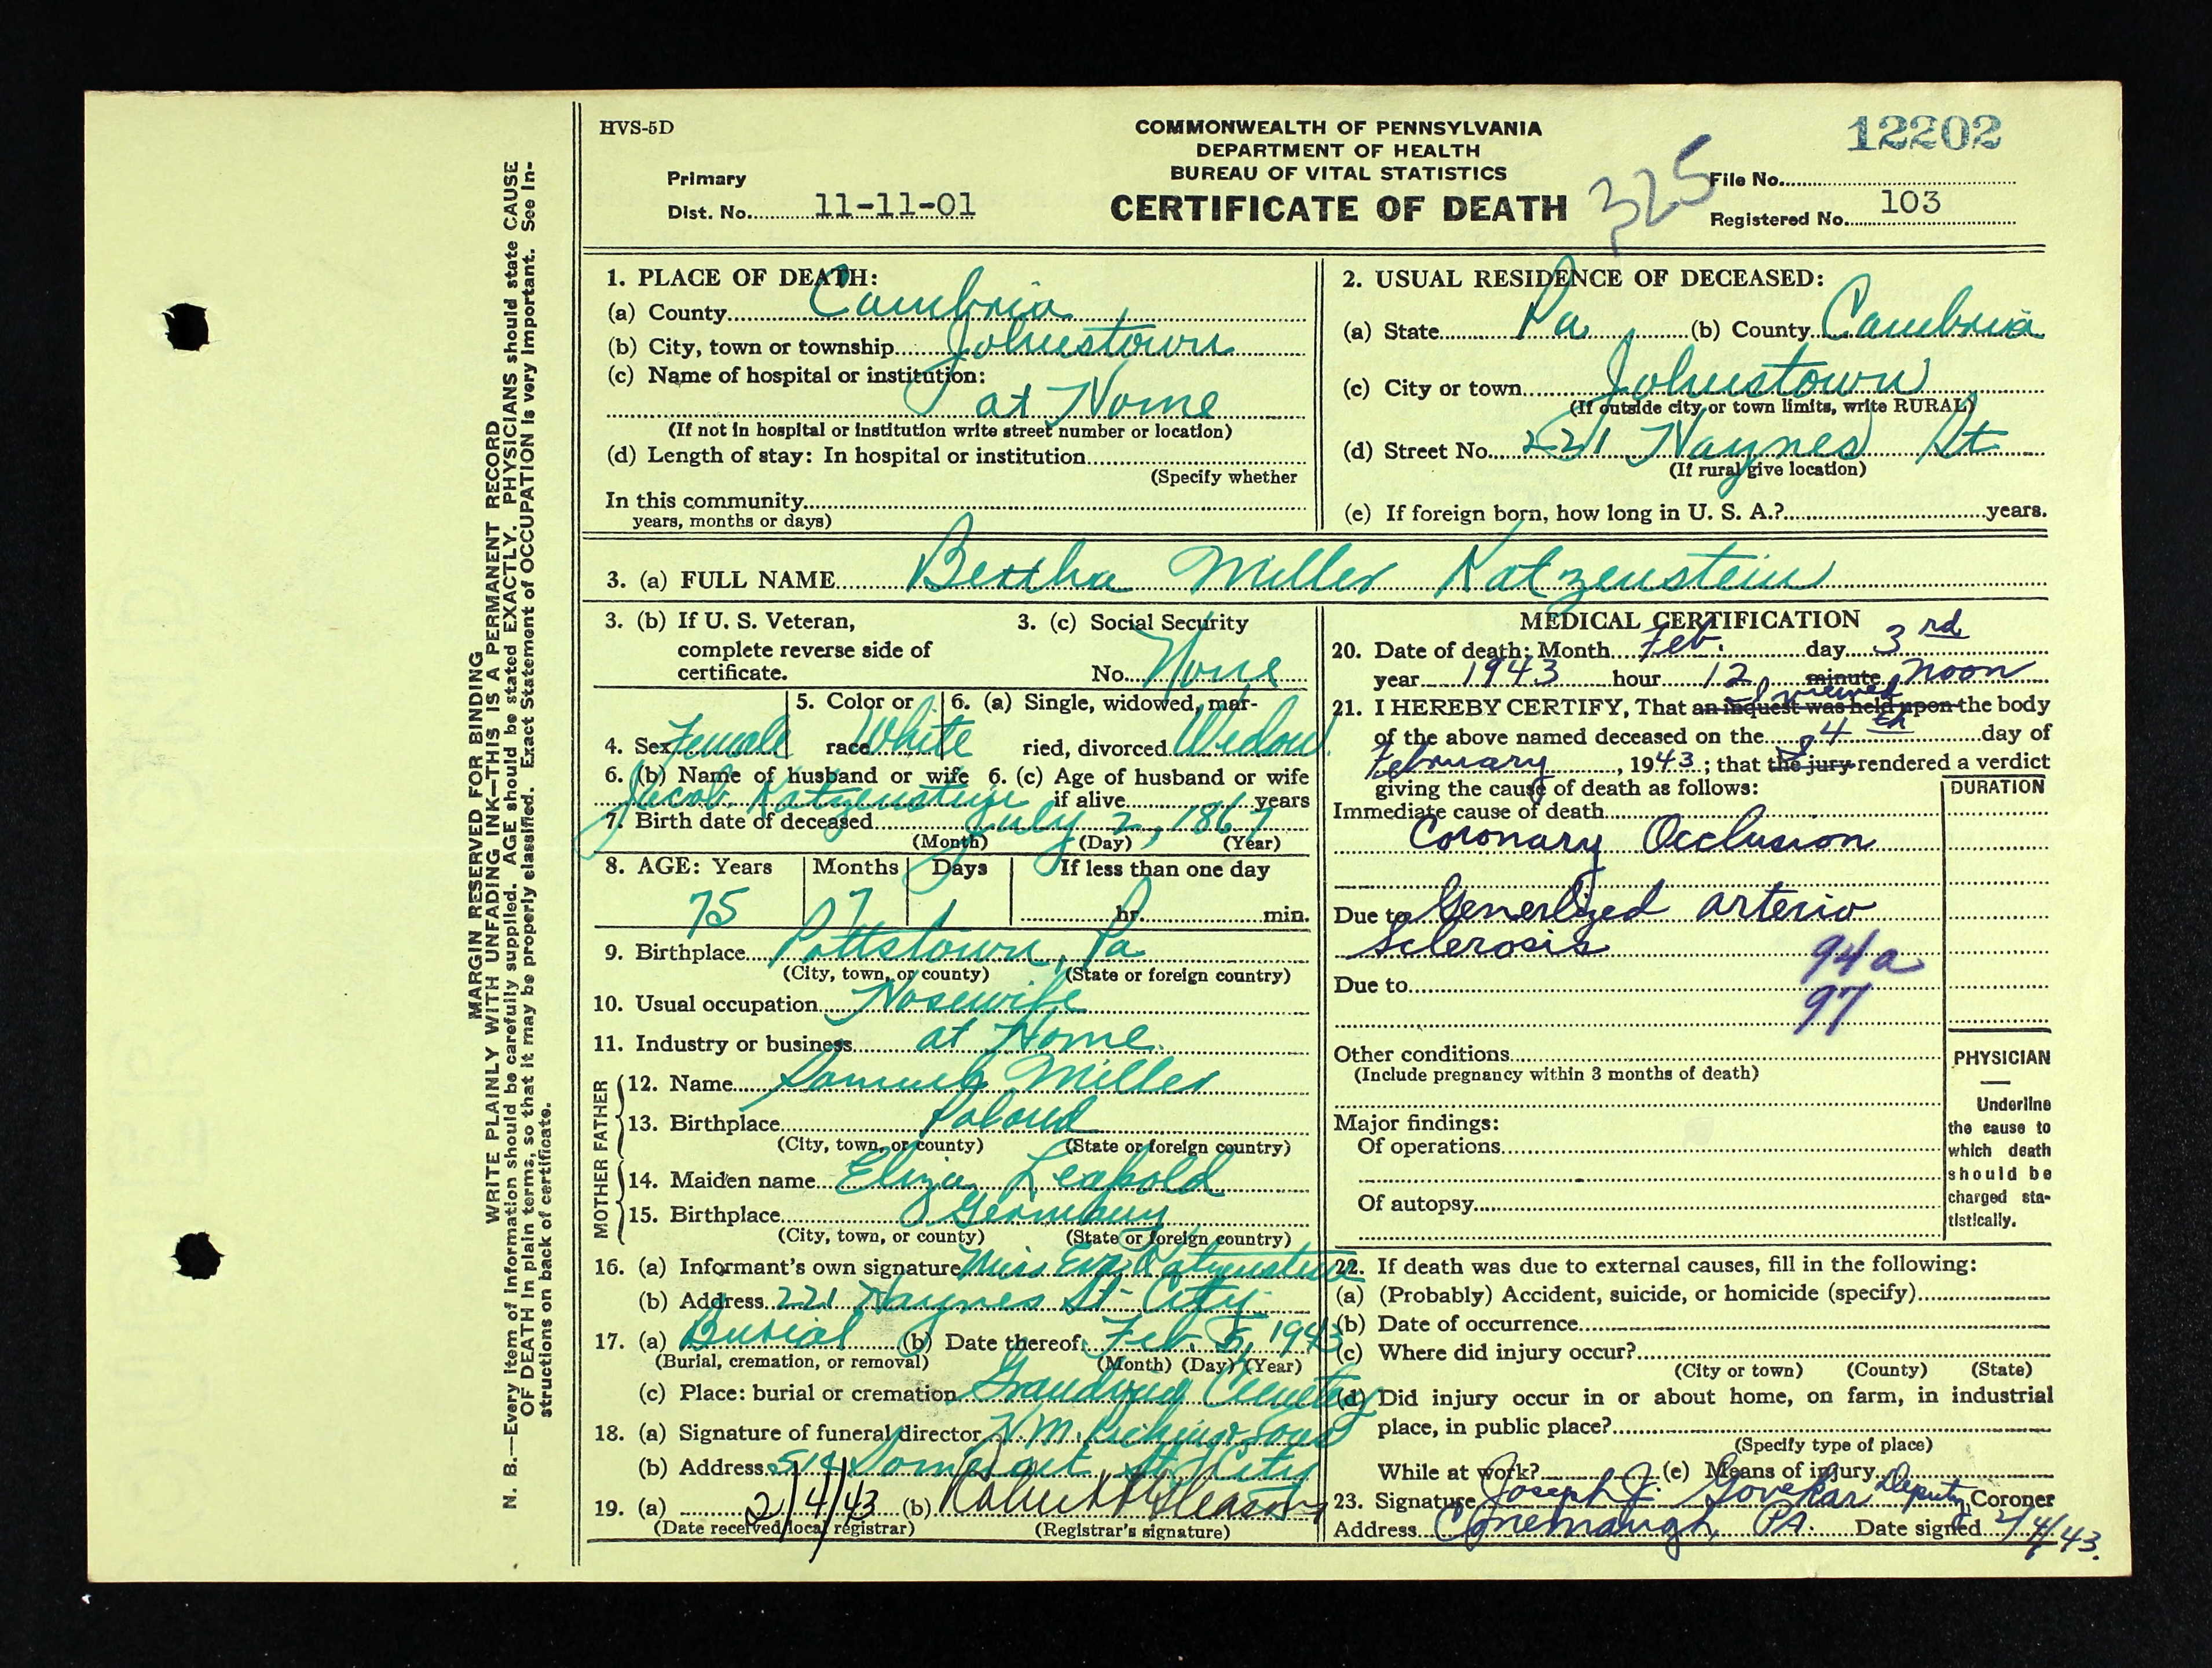 Lovely photos of birth certificate in philadelphia business johnstown from birth certificate in philadelphia image source brotmanblog aiddatafo Gallery